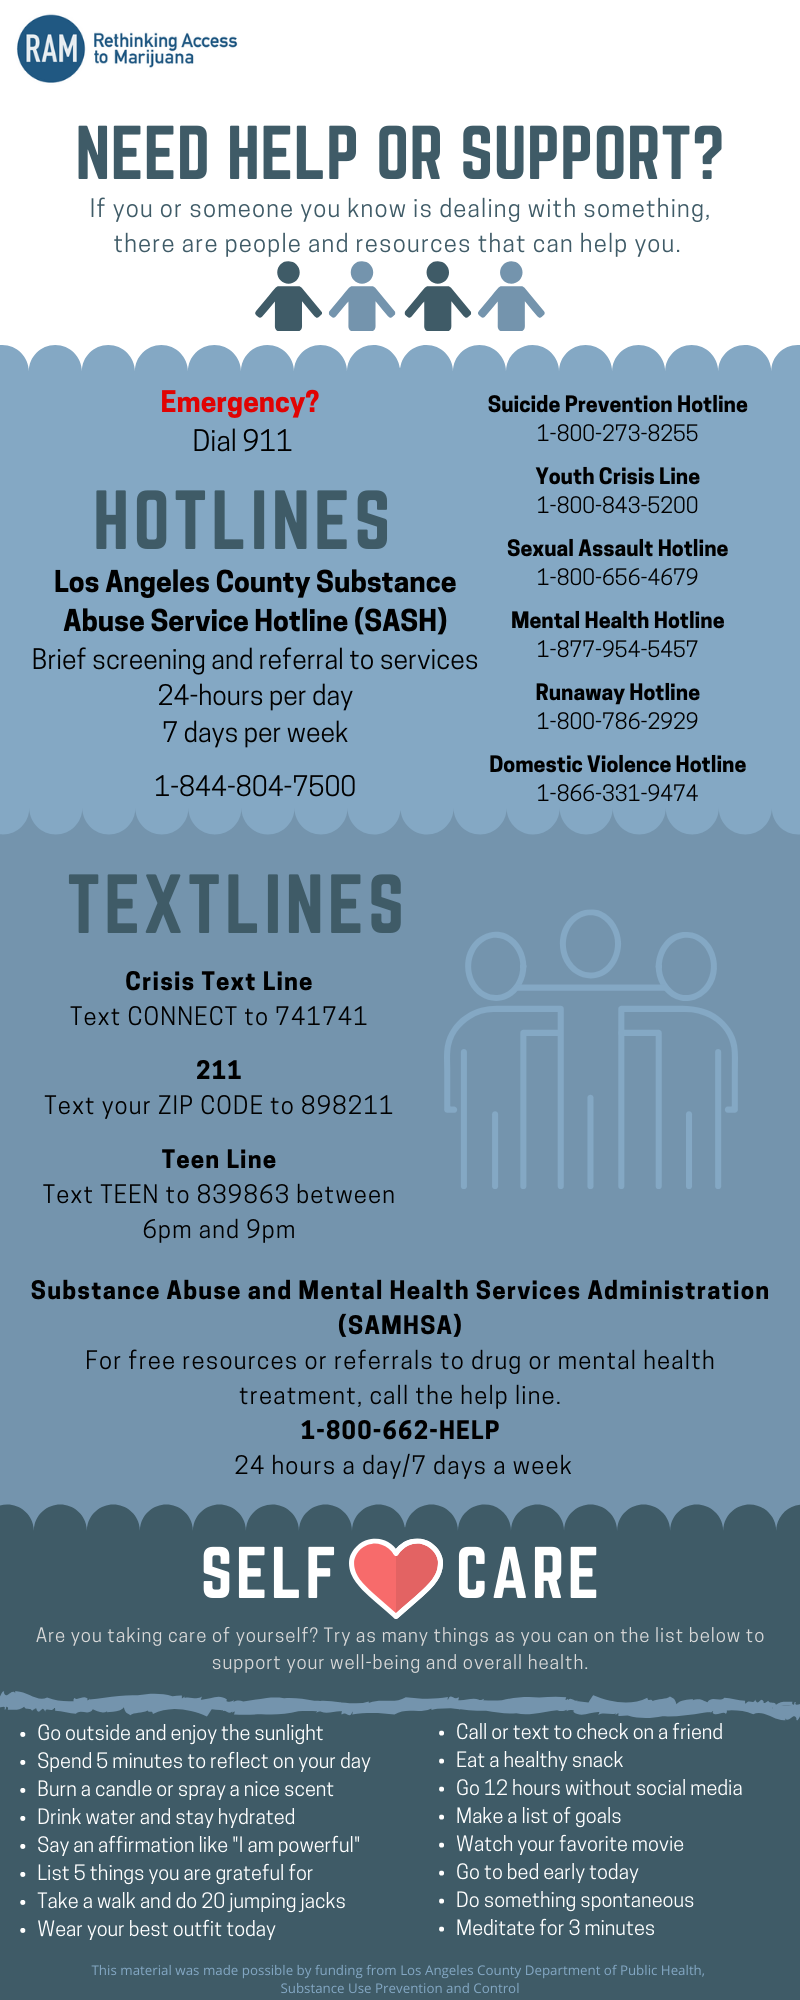 Hotlines and textlines